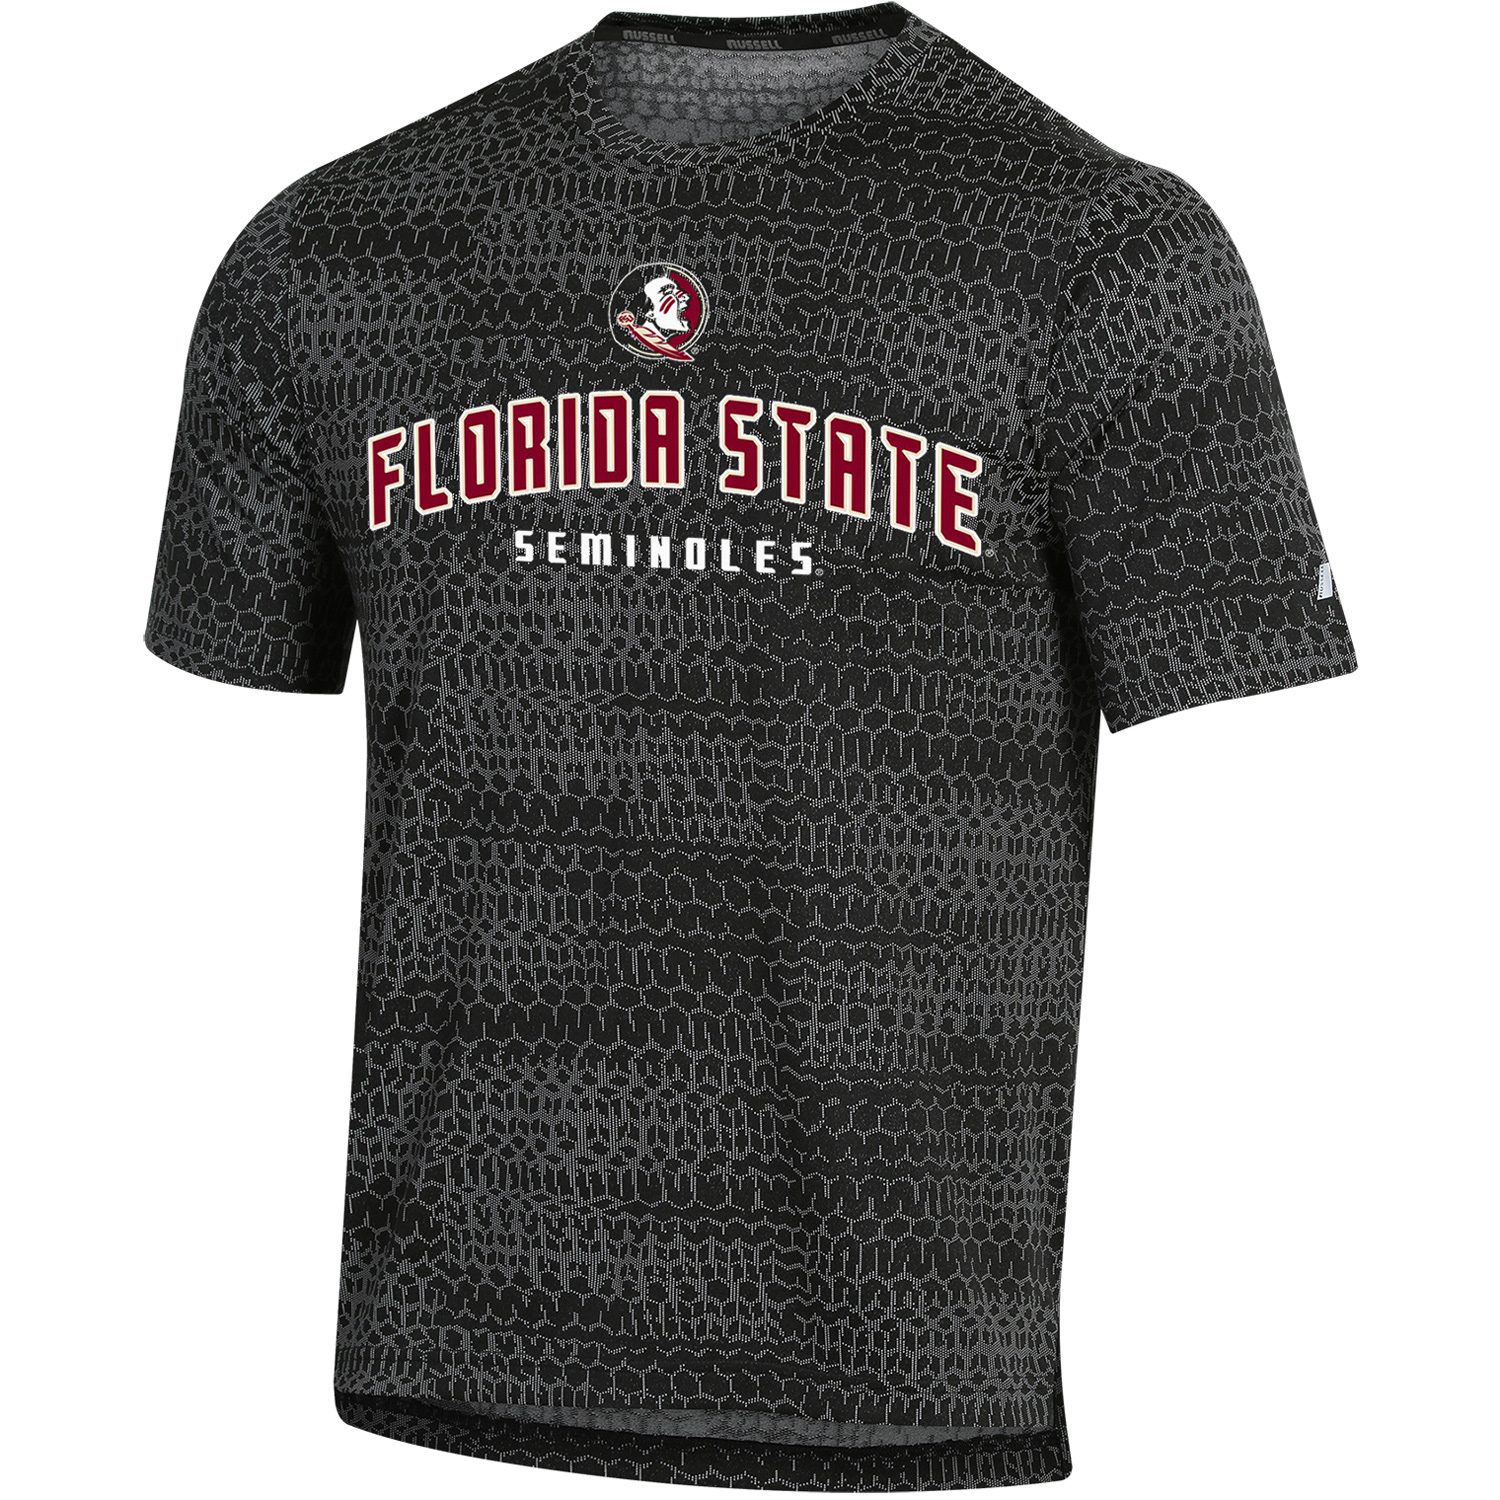 Men's Russell Black Florida State Seminoles Synthetic T-Shirt